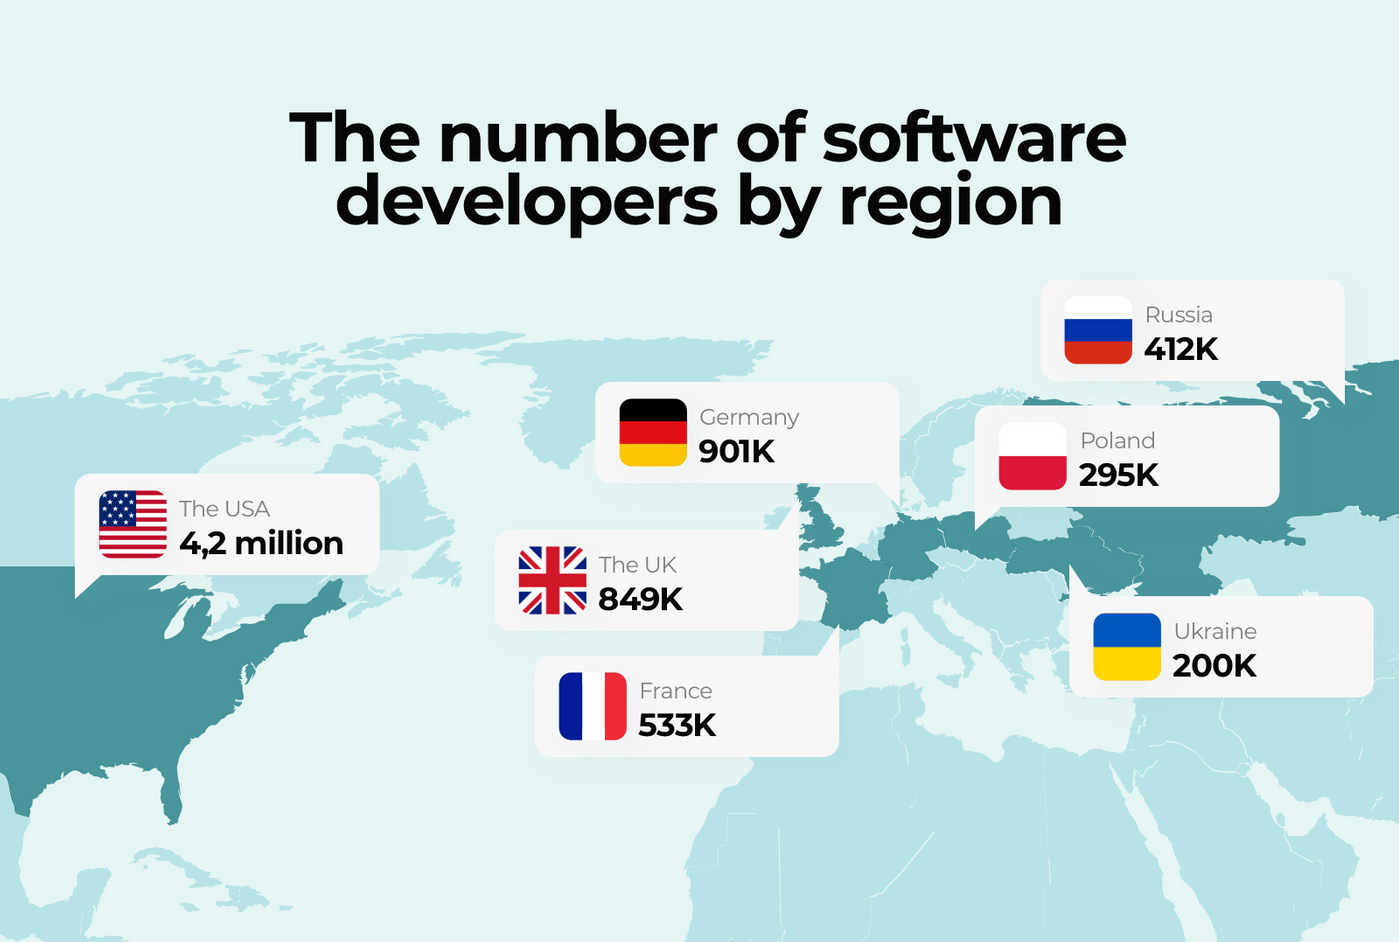 Number of software developers by region